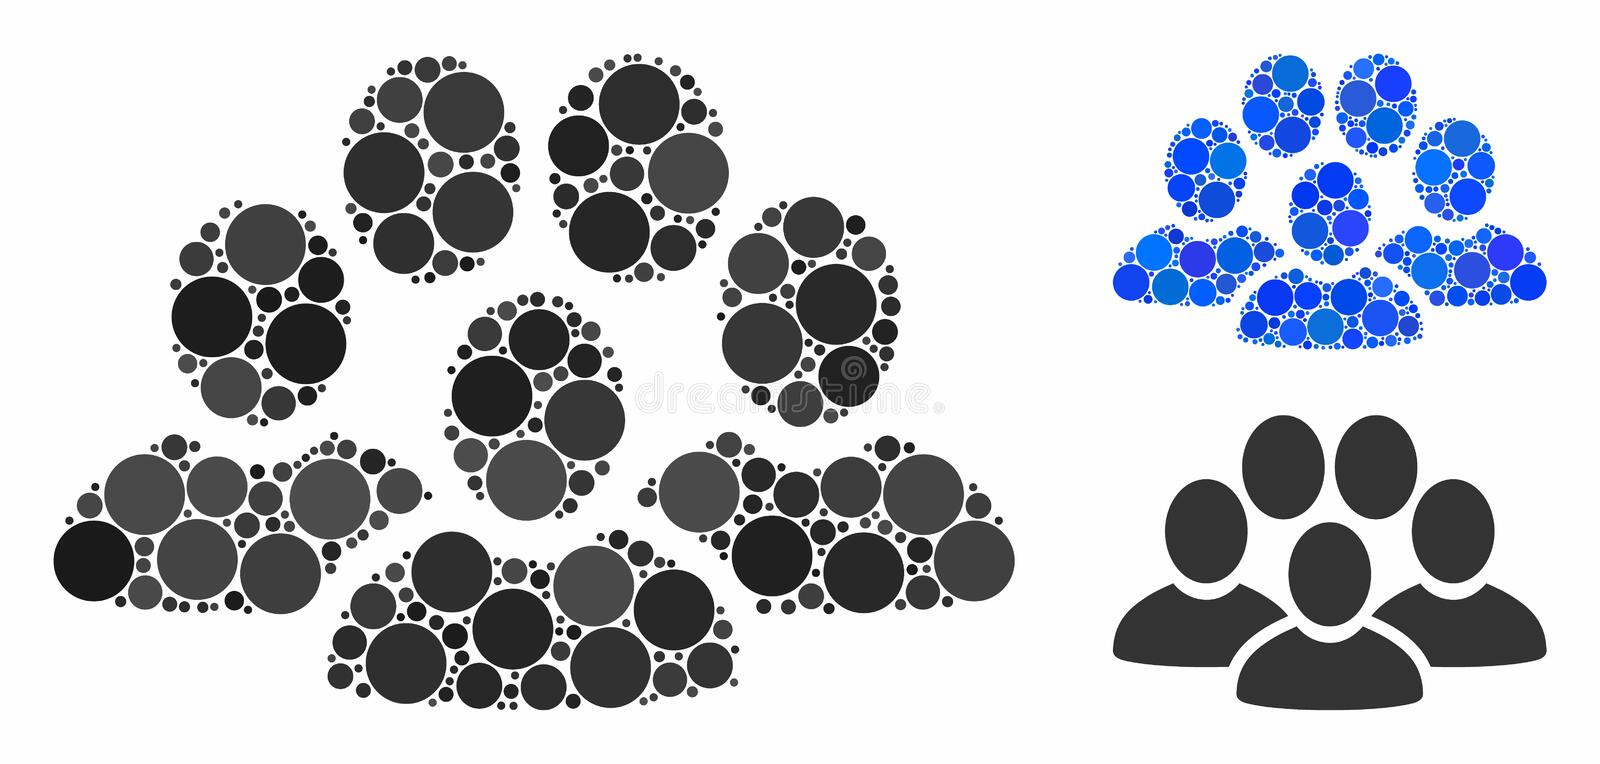 People crowd Composition Icon of Circles. People crowd composition of circle elements in variable sizes and color tinges, based on people crowd icon. Vector royalty free illustration